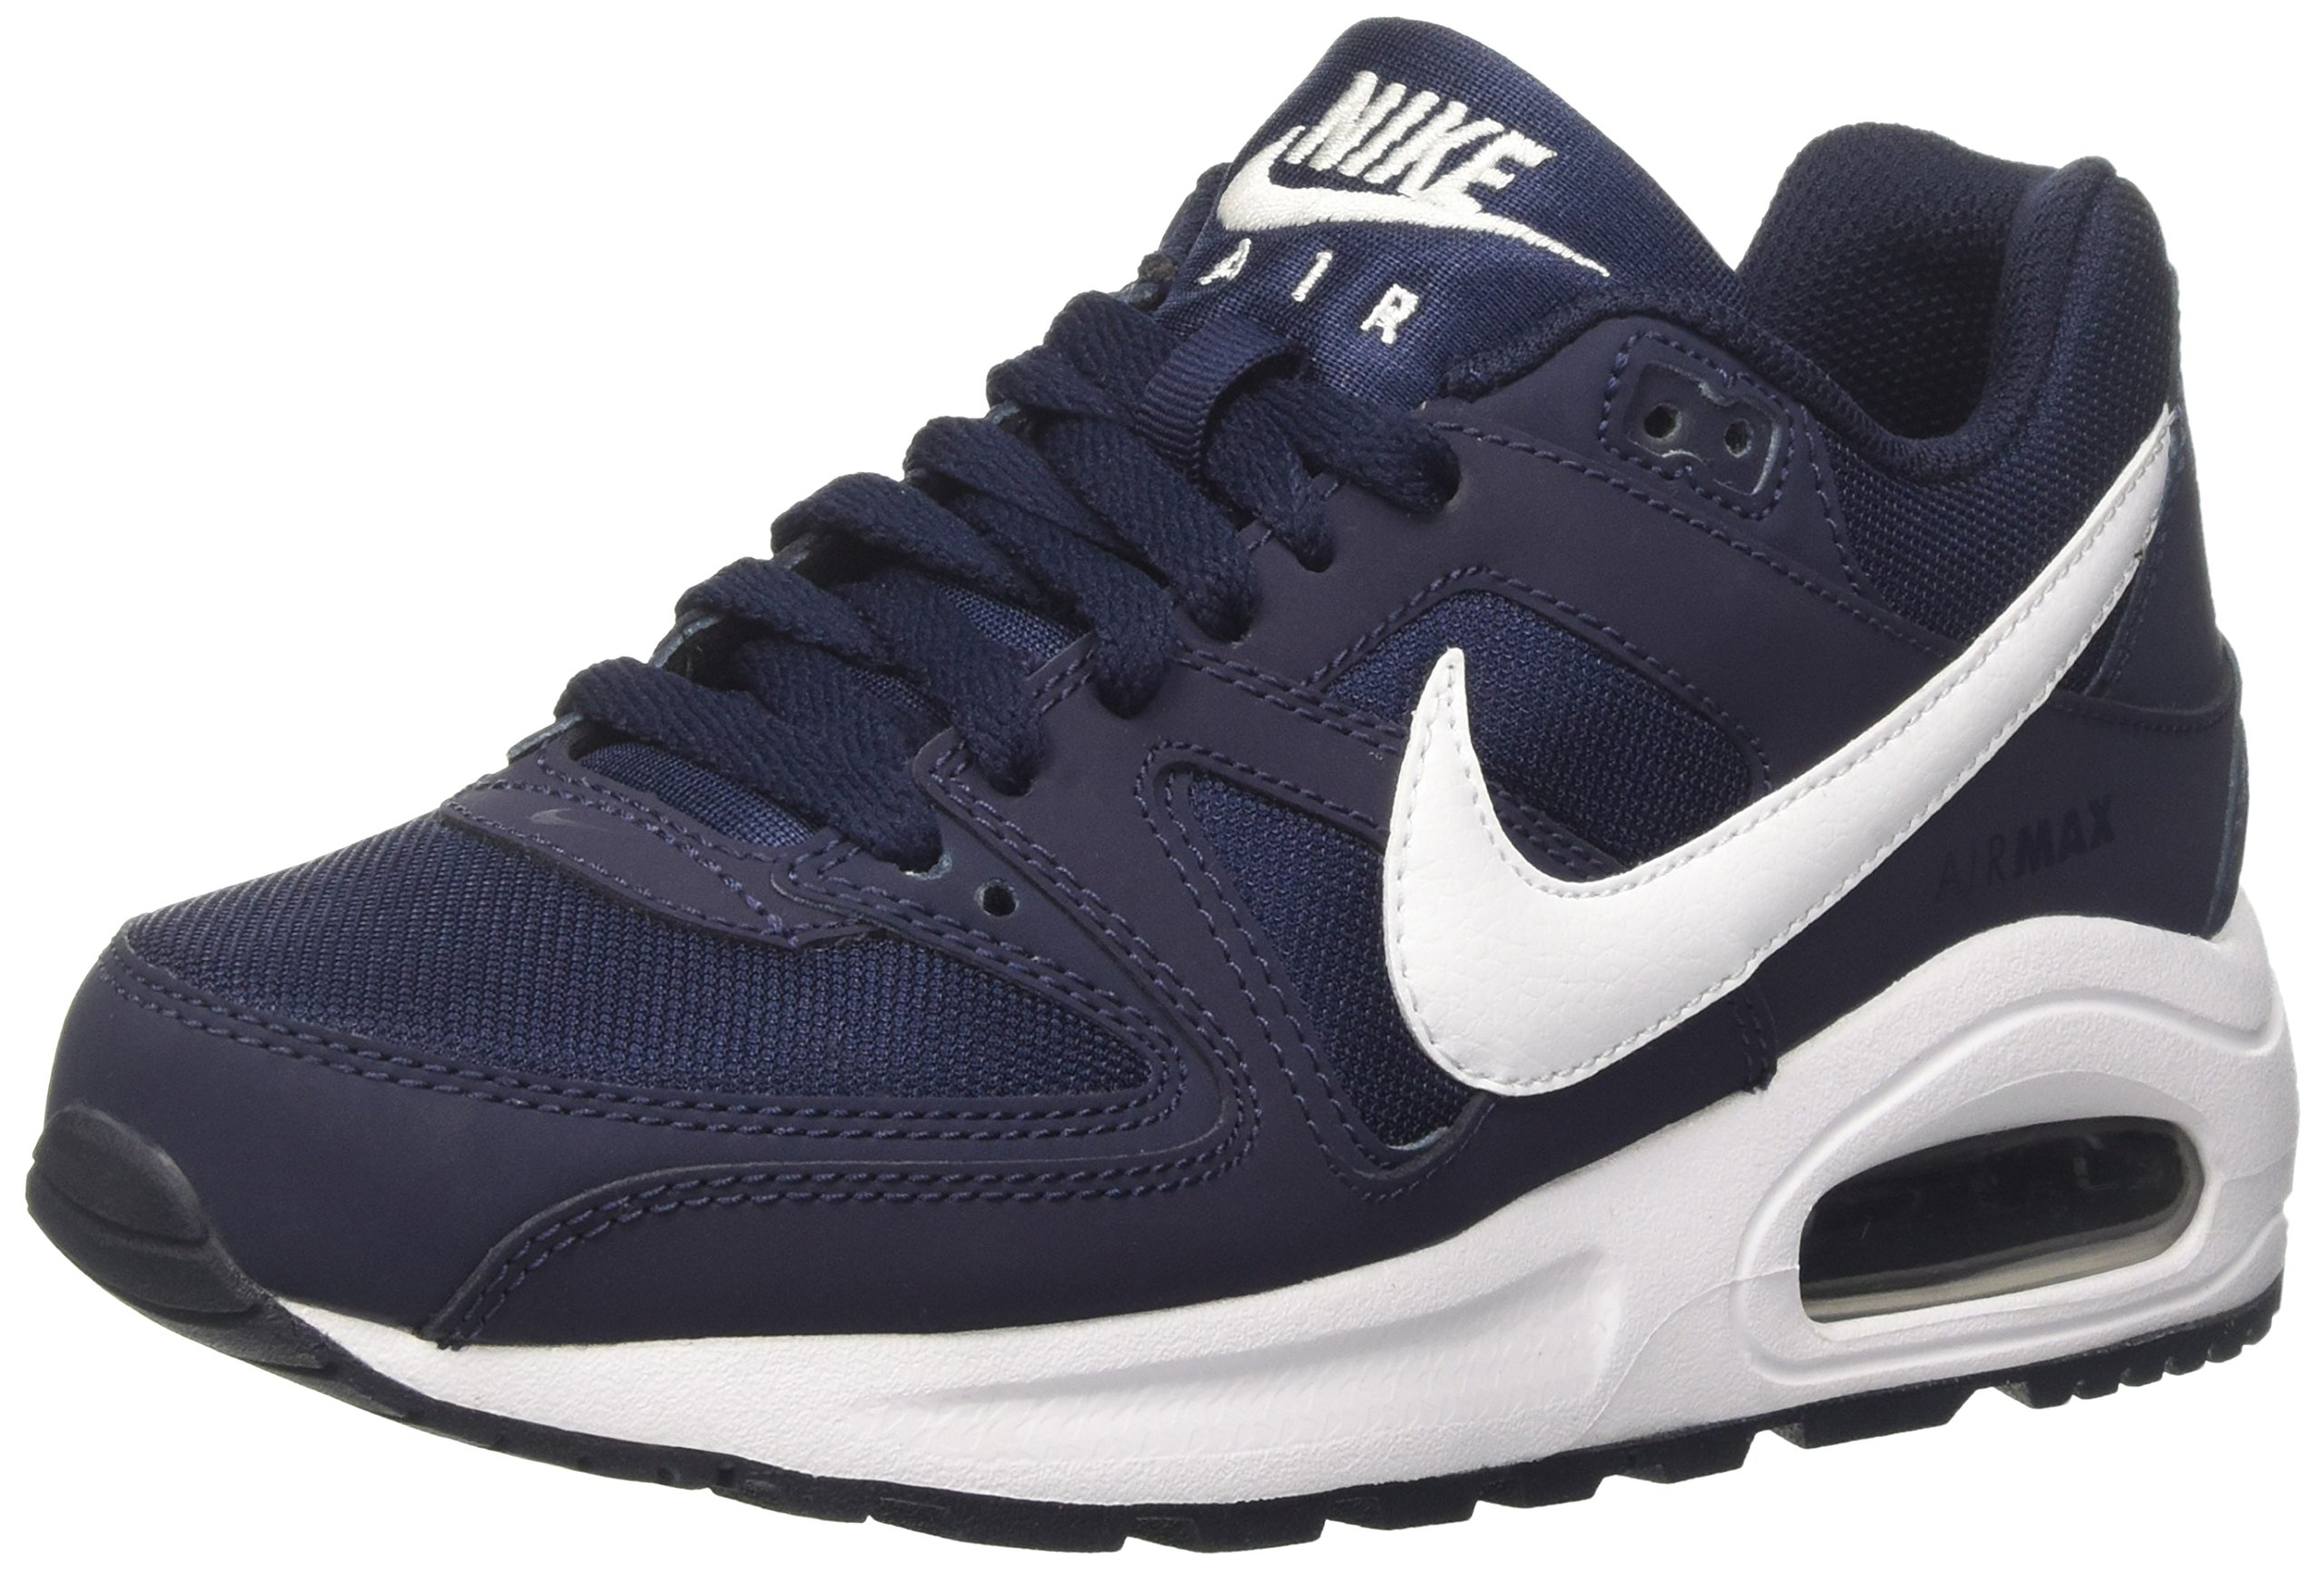 cheaper 92f5d 83368 Nike Air Max Command Flex